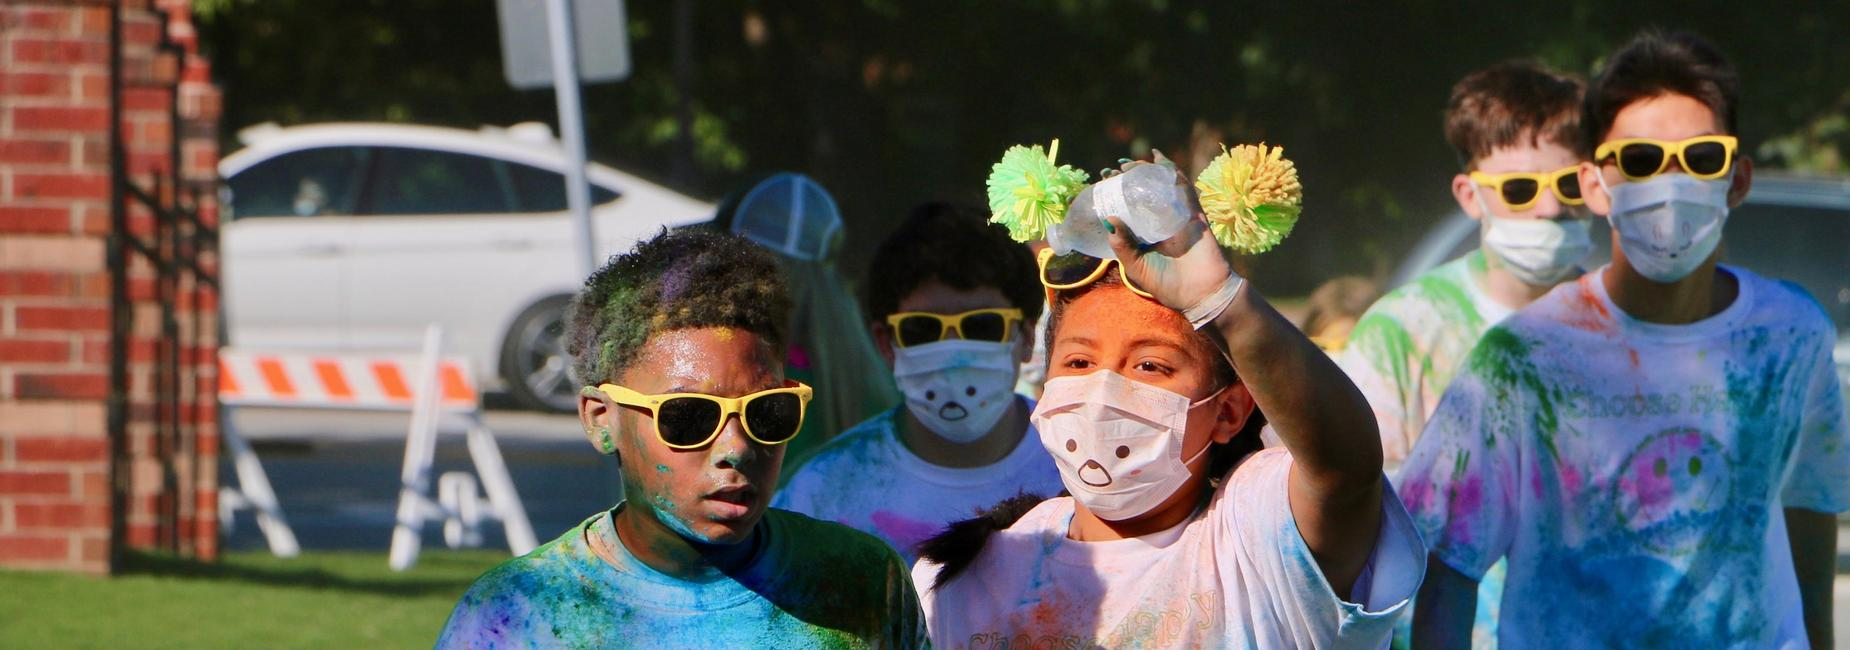 Bms color run